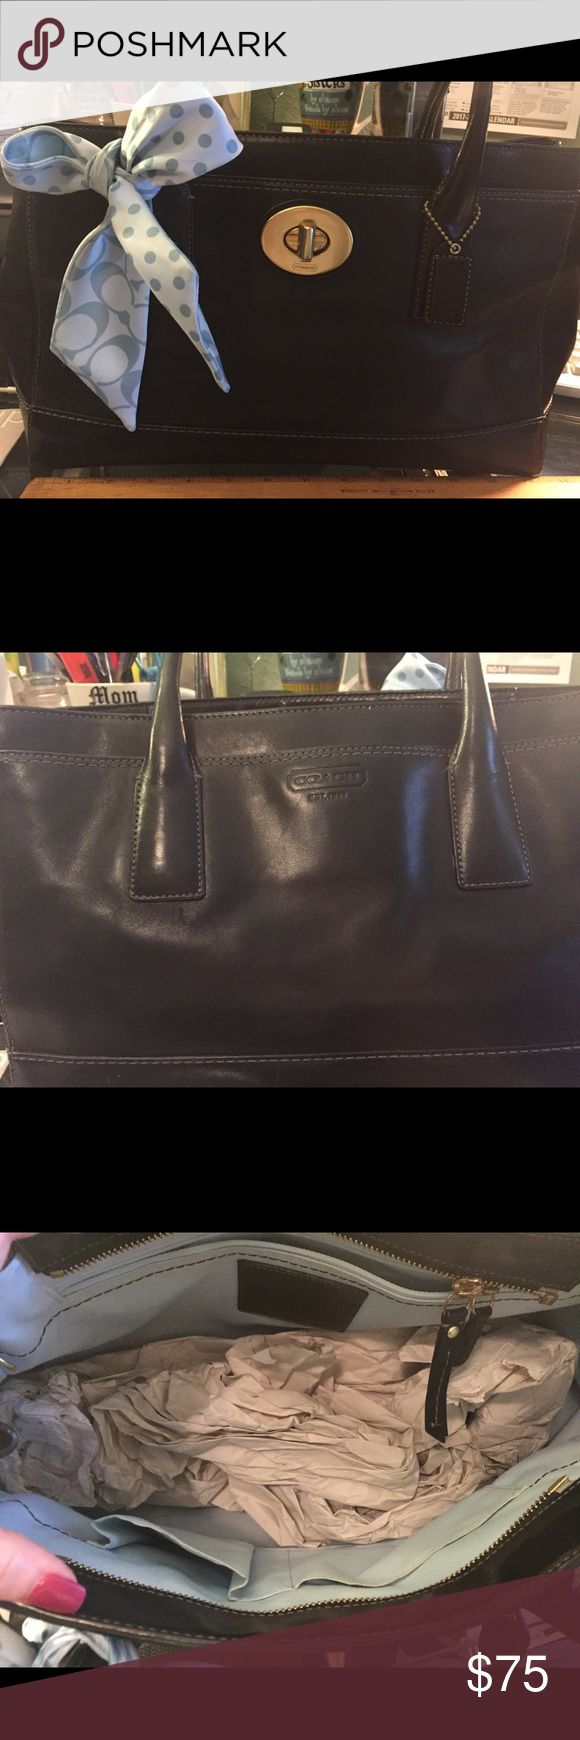 Coach Handbag Used Black with Gold hardware Coach Tote/Satchel. Pale blue interior with scarf. An iPad 2 fits inside. Coach Bags Totes